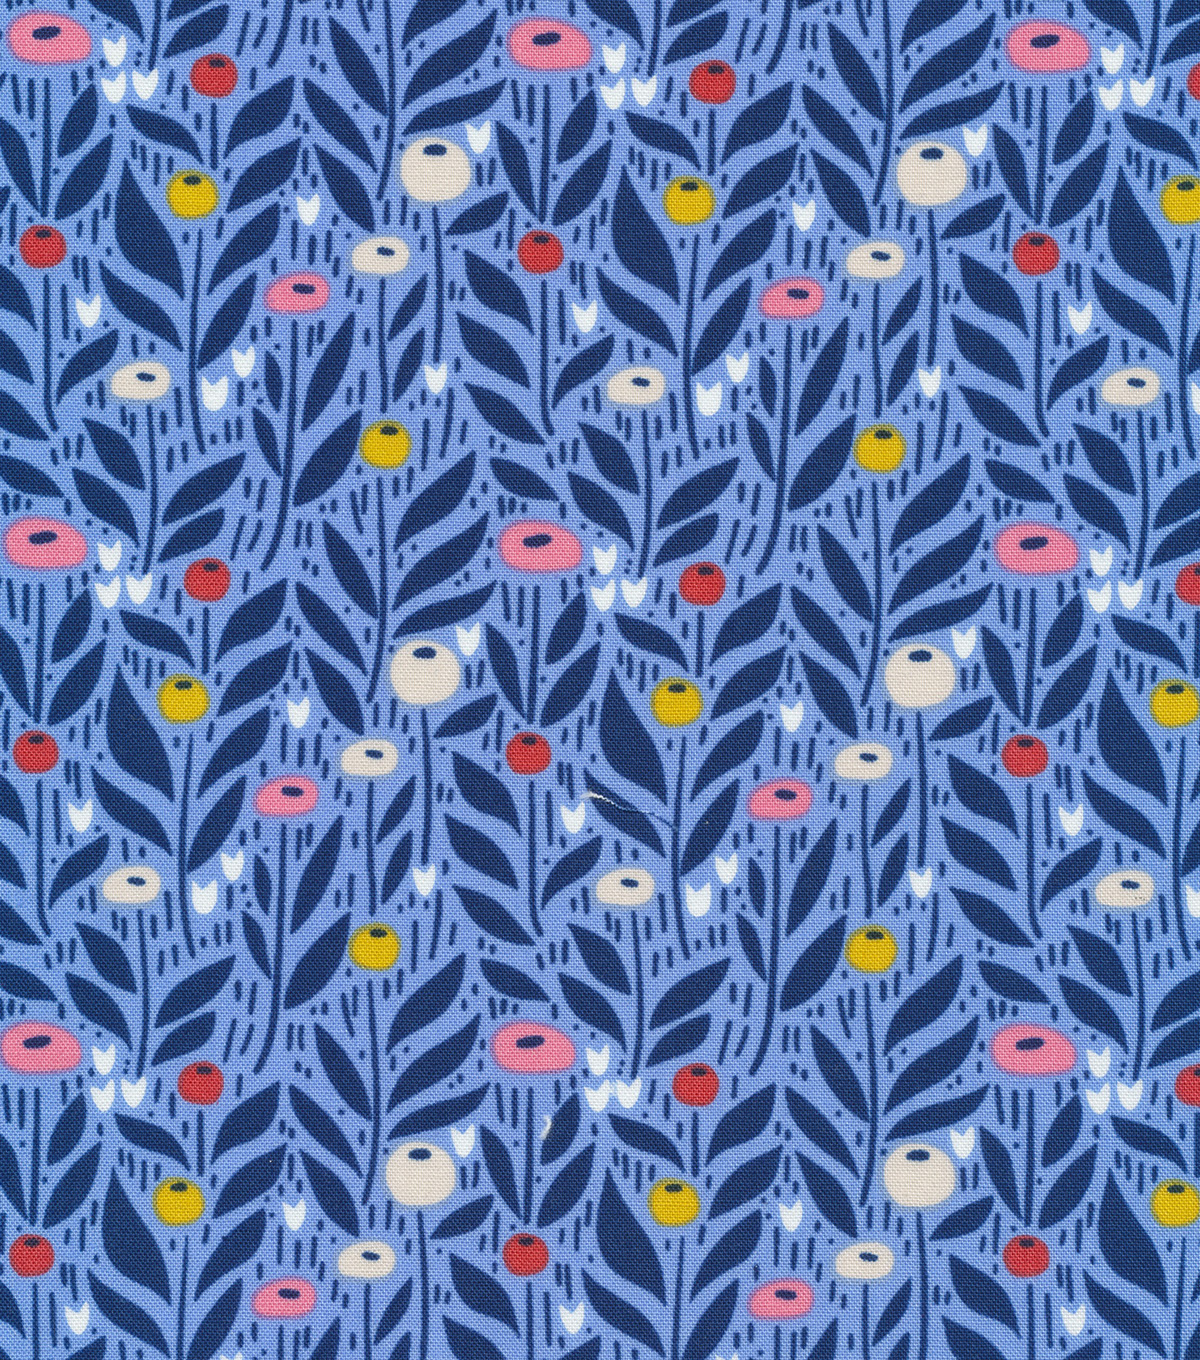 Cloud 9 Premium Quilt Cotton Fabric 44\u0027\u0027-Tulips